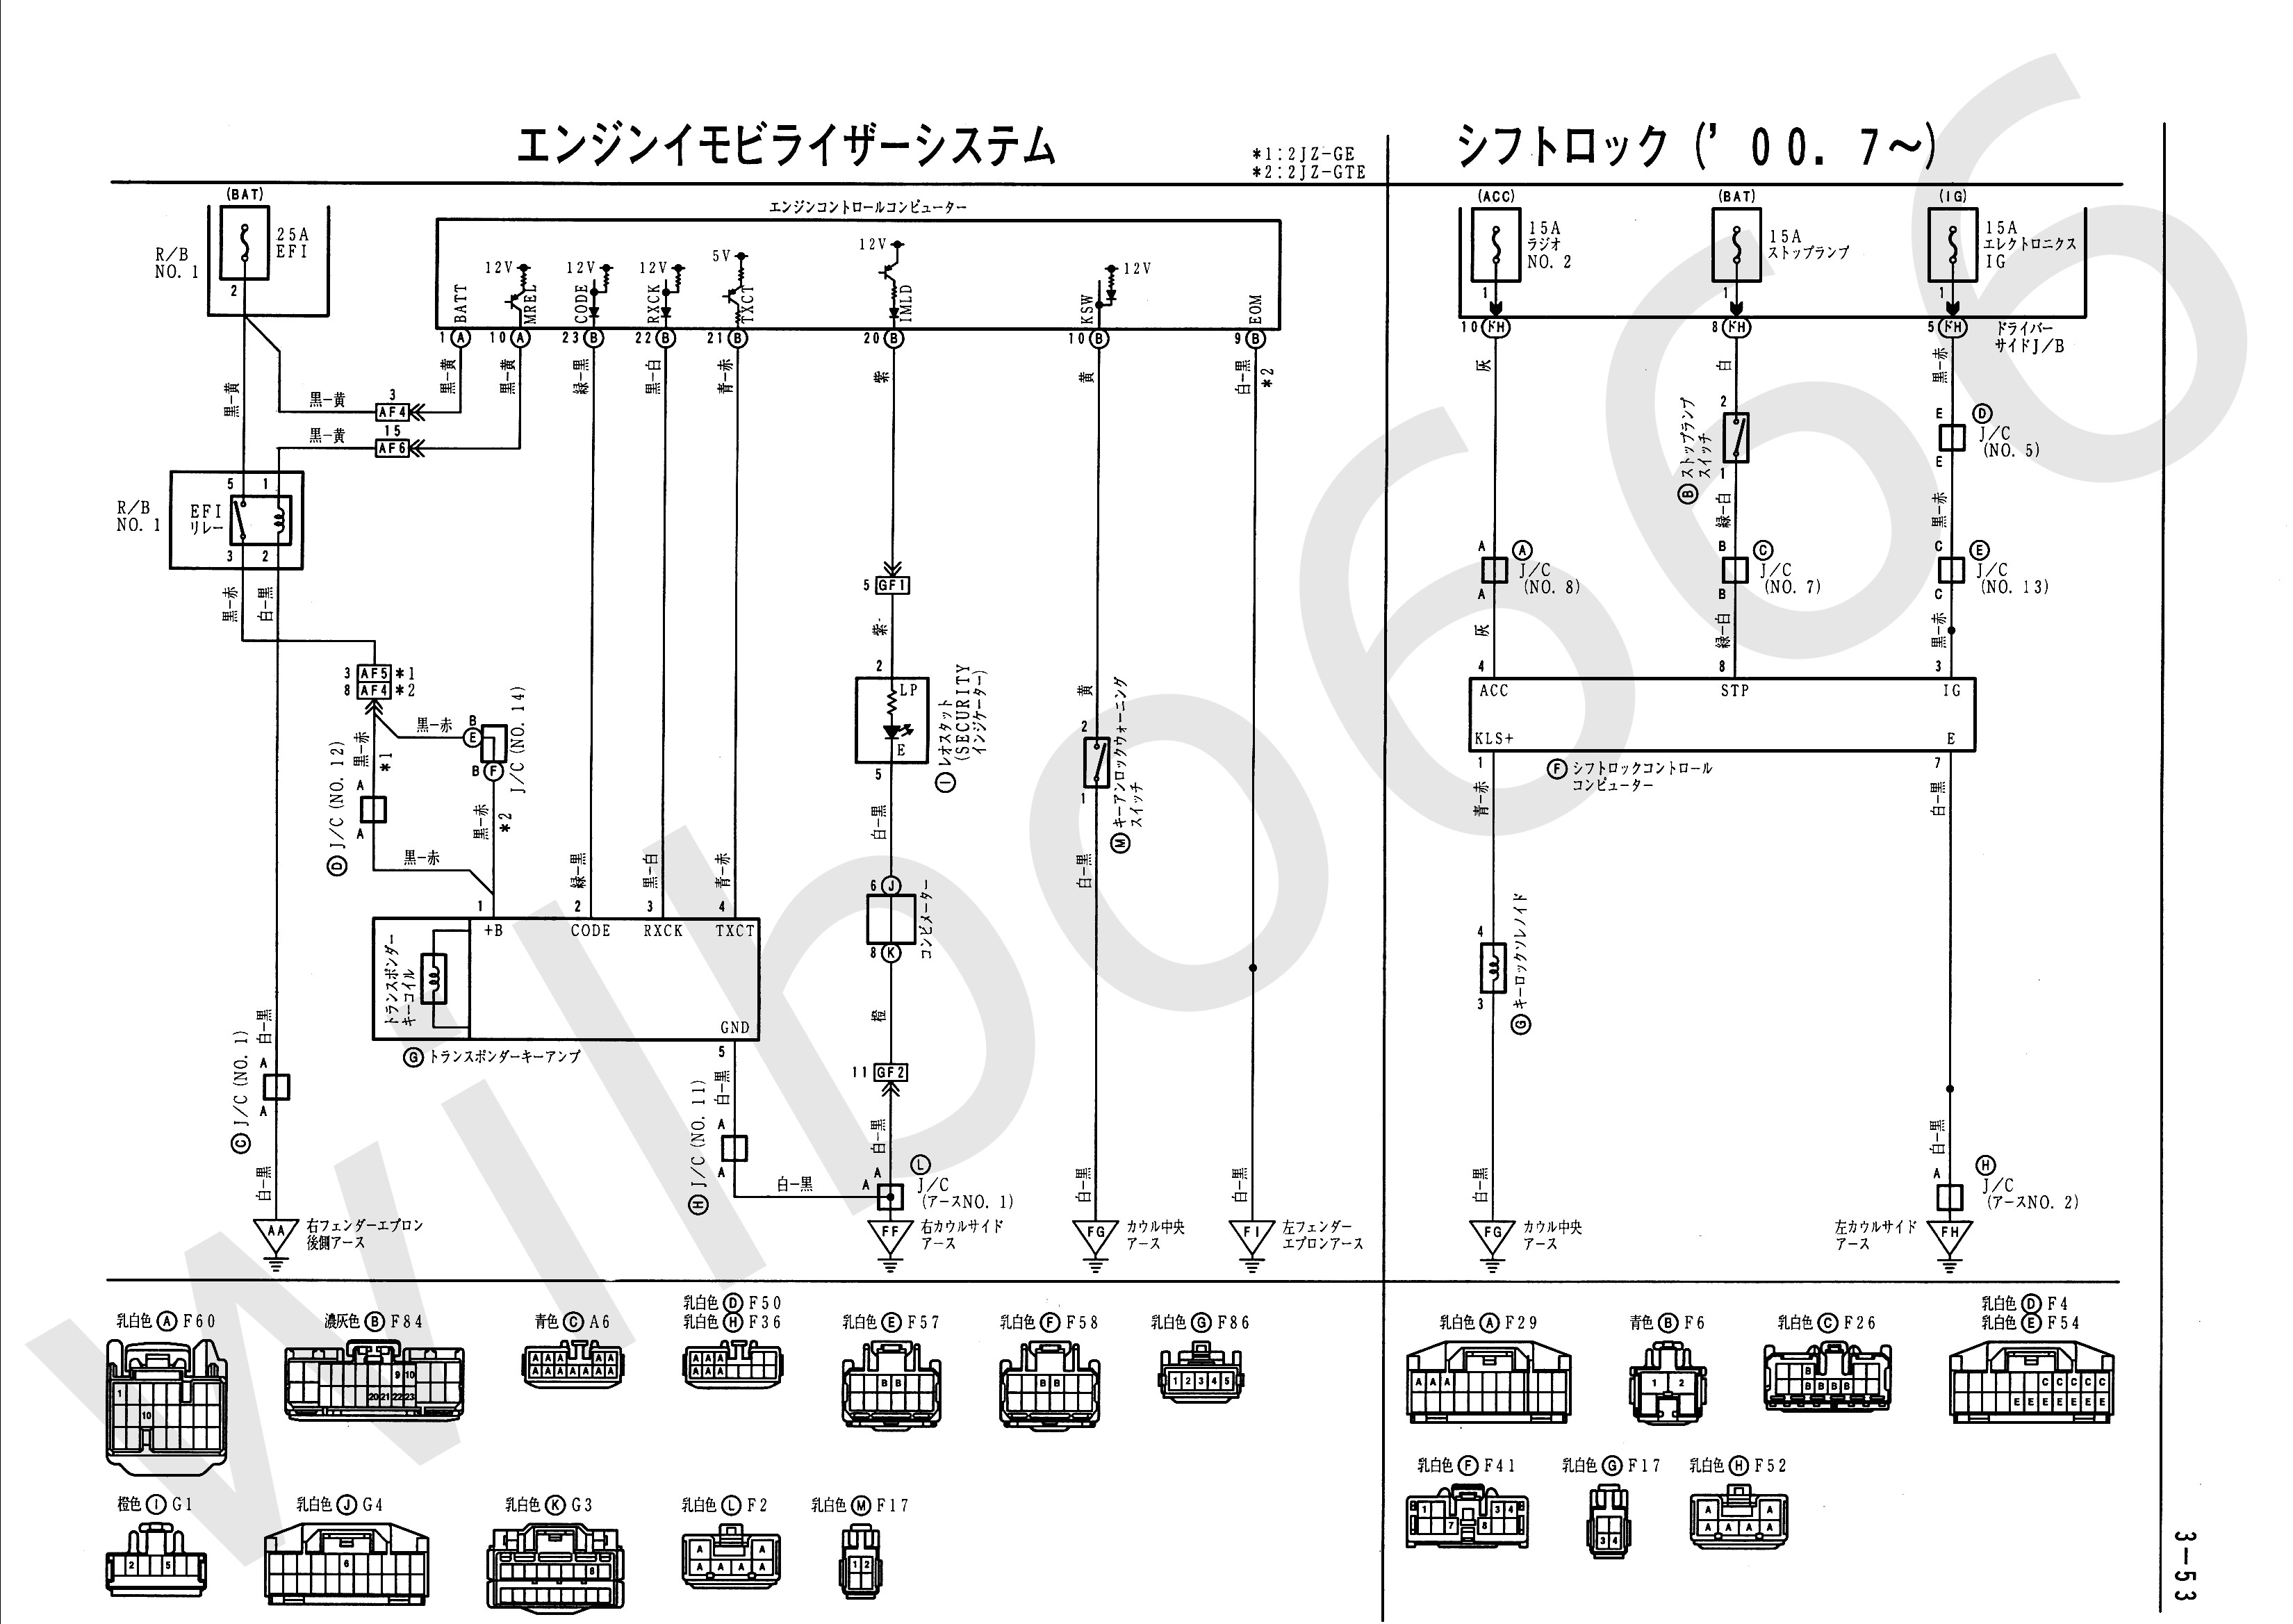 Car Engine Management System Block Diagram Sel Generator Control Wilbo666 2jz Gte Vvti Jzs161 Aristo Wiring Of